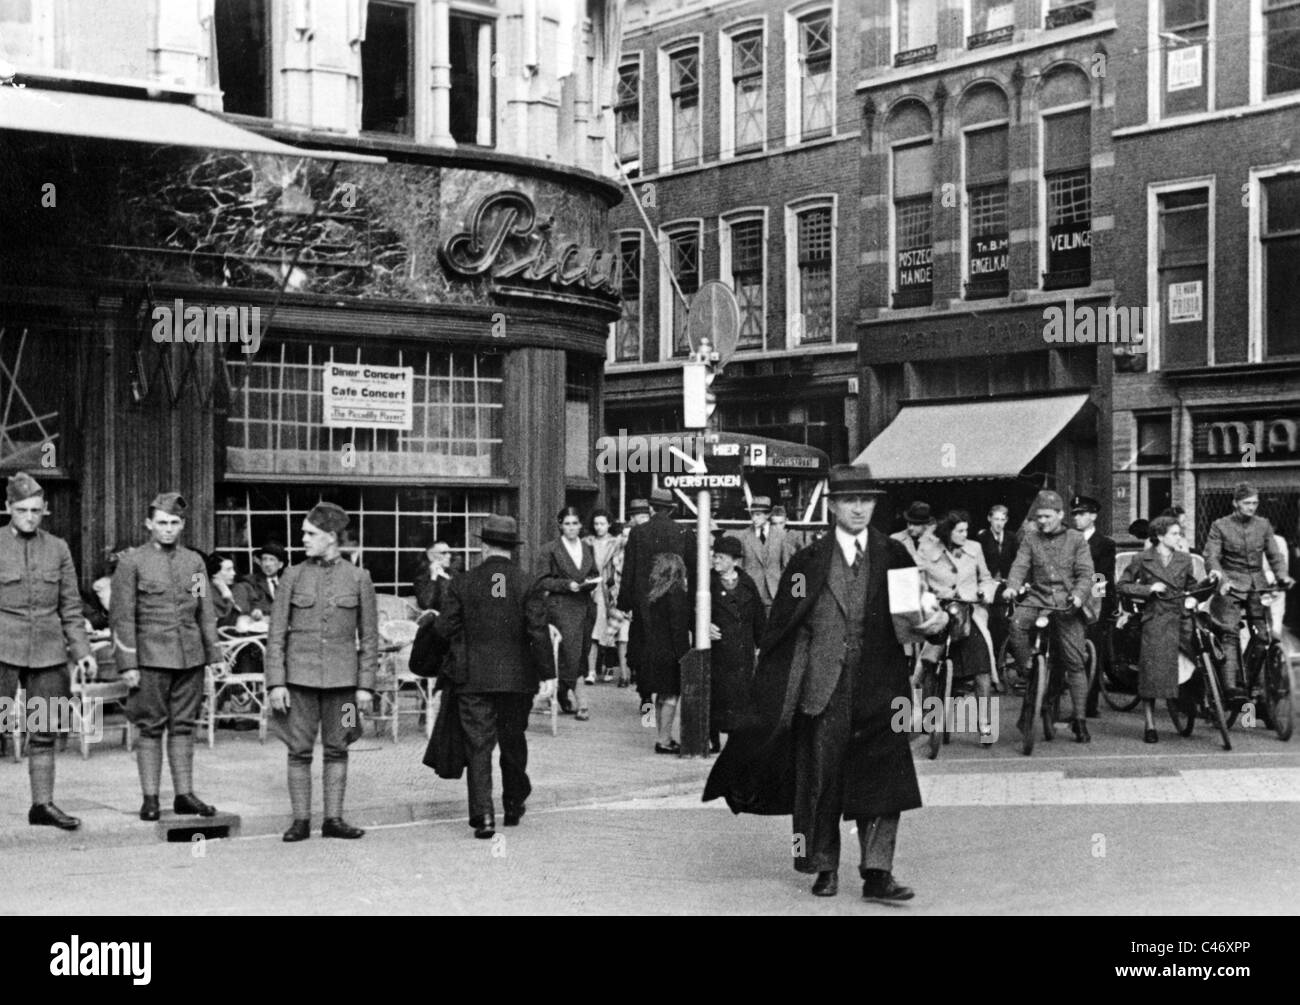 Second World War: Western Front. The Netherlands under German occupation, 1940 - 1944 Stock Photo